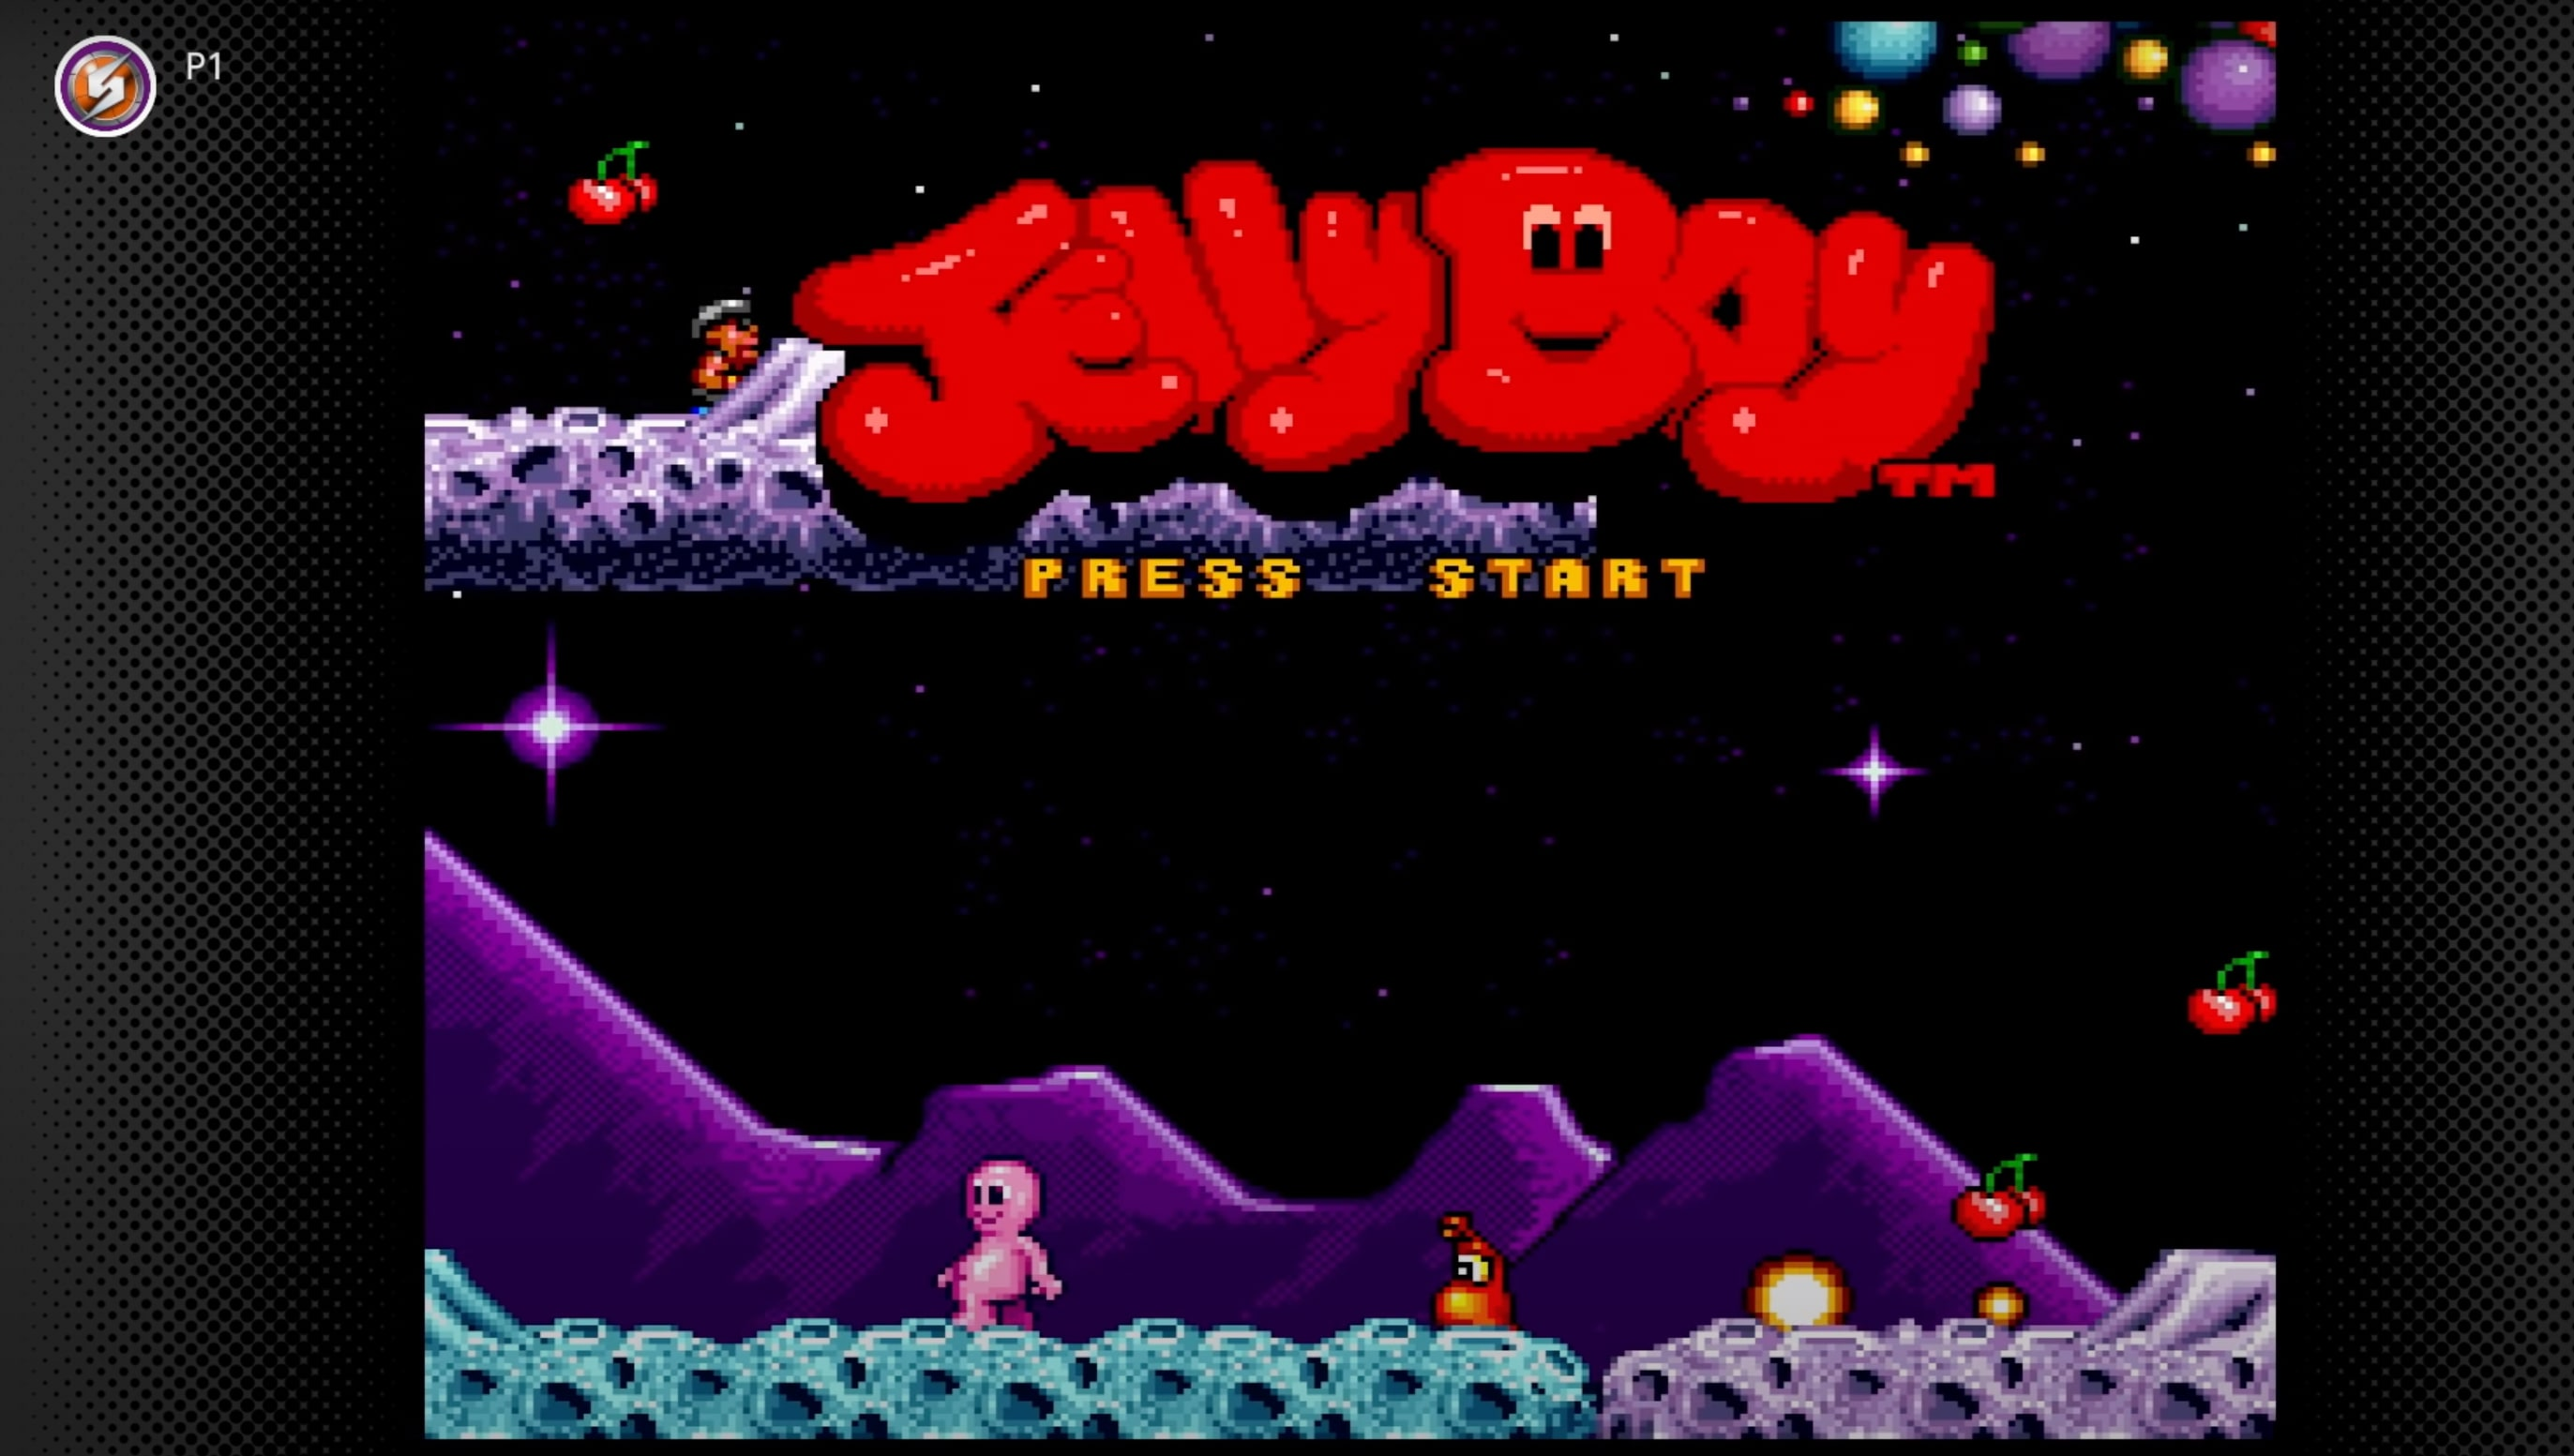 Nintendo's next SNES Switch Online games include 'Claymates' and 'Jelly Boy' | Engadget